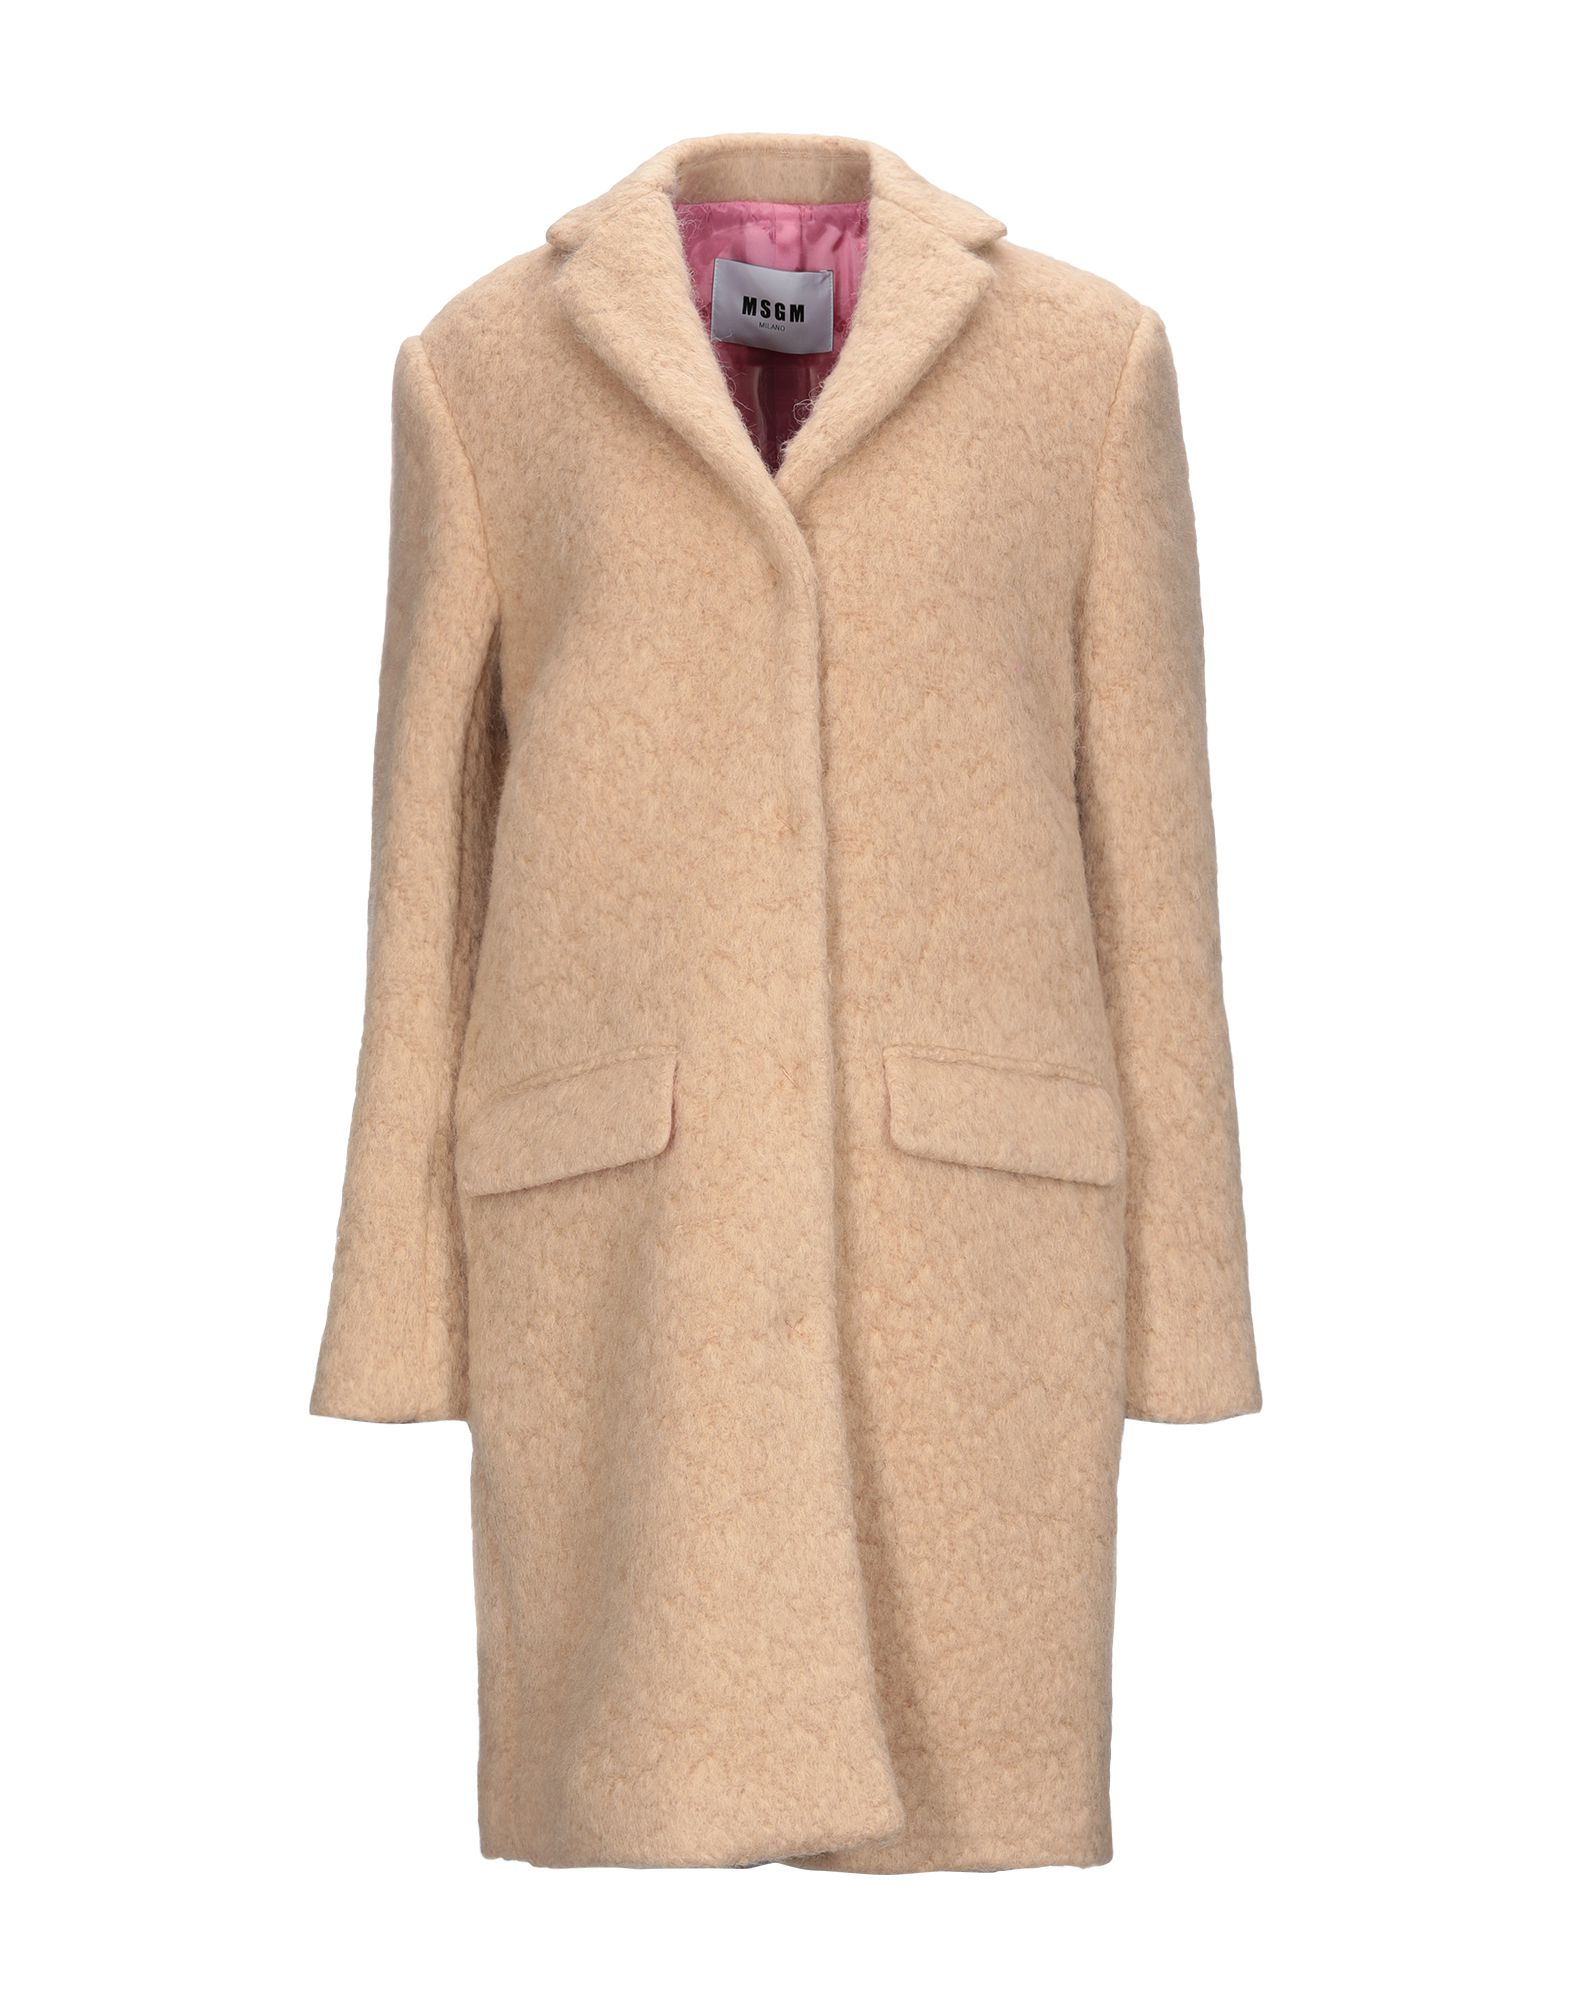 MSGM Coats. bouclé, no appliqués, solid color, single-breasted, snap buttons fastening, lapel collar, multipockets, long sleeves, fully lined, large sized. 88% Virgin Wool, 12% Polyamide